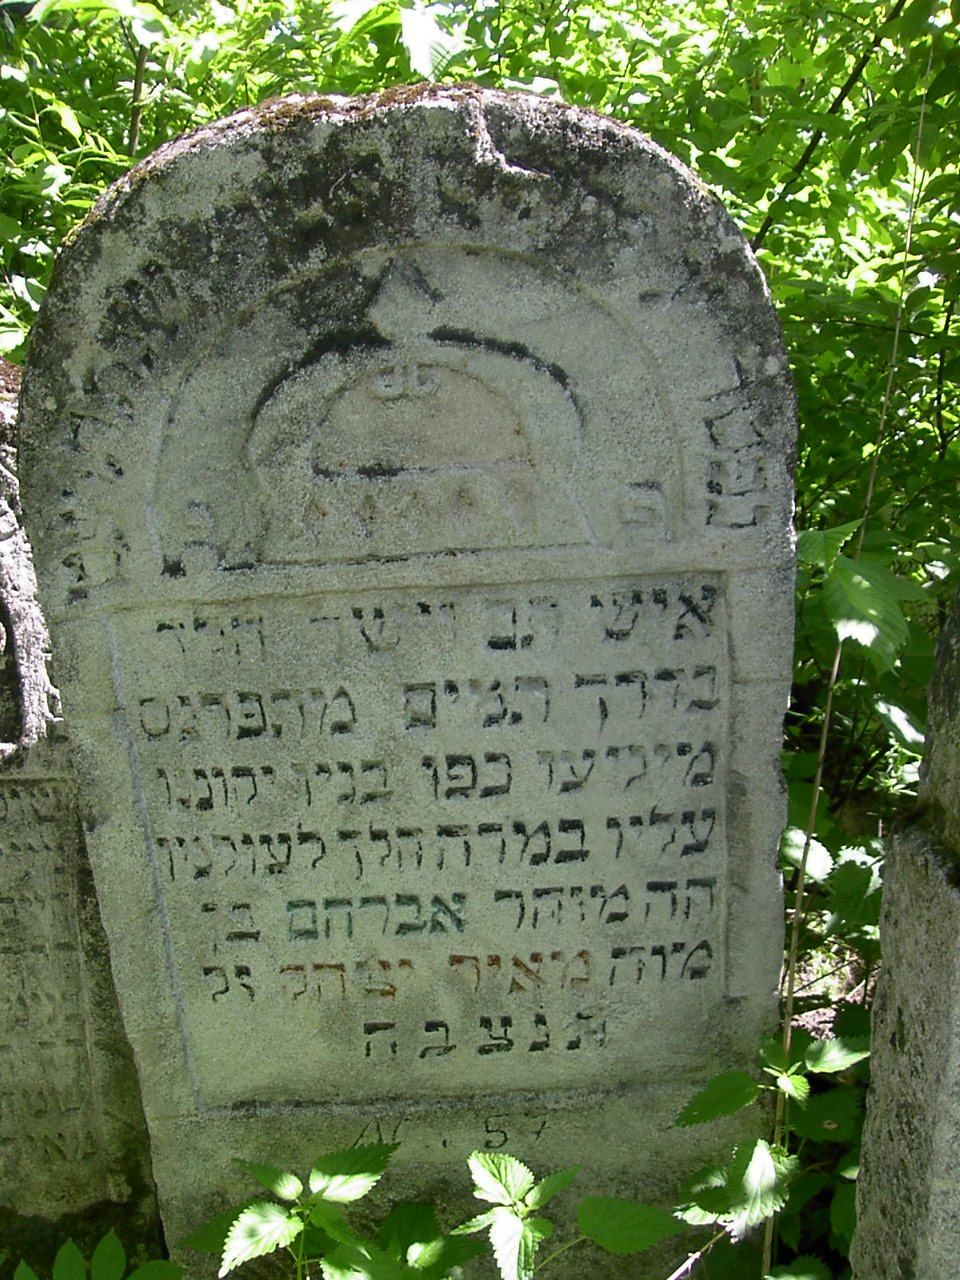 2015 The Jewish Cemetery In Lubaczow Poland Decoration The